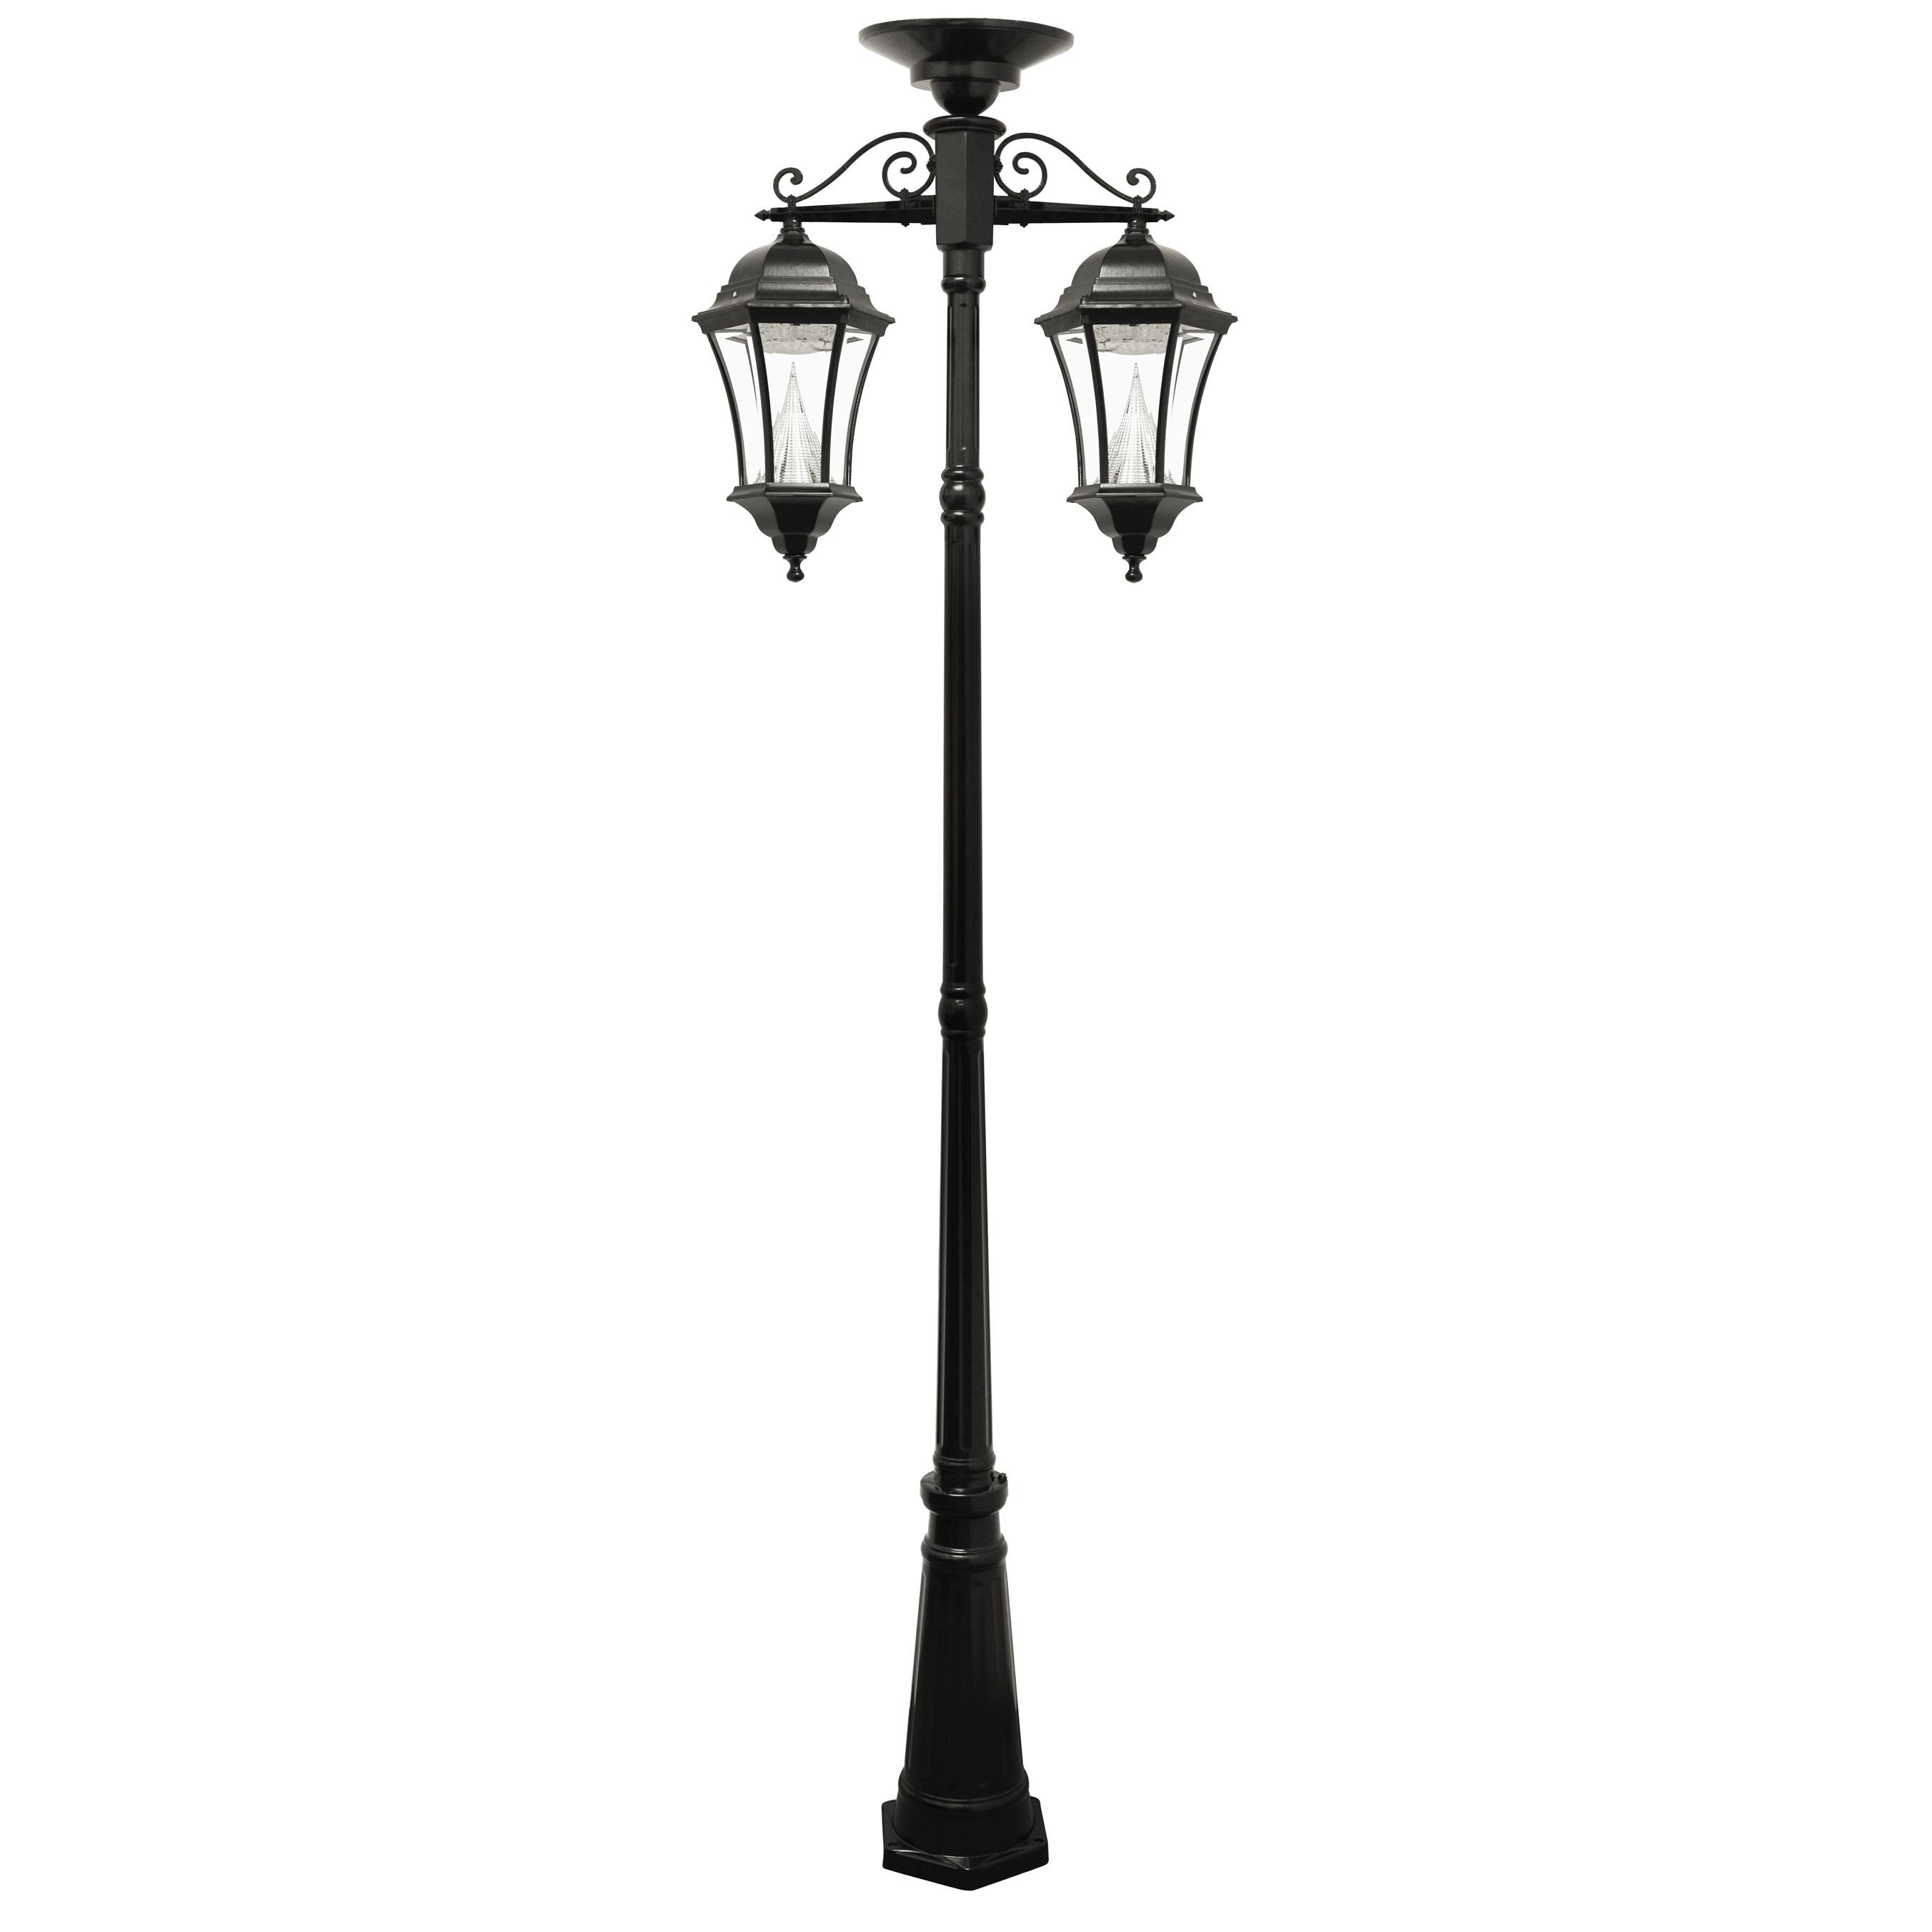 Sonic victorian solar two lamp outdoor lamp post victorian solar sonic victorian solar two lamp outdoor lamp post victorian solar lamp post and 2 mozeypictures Gallery